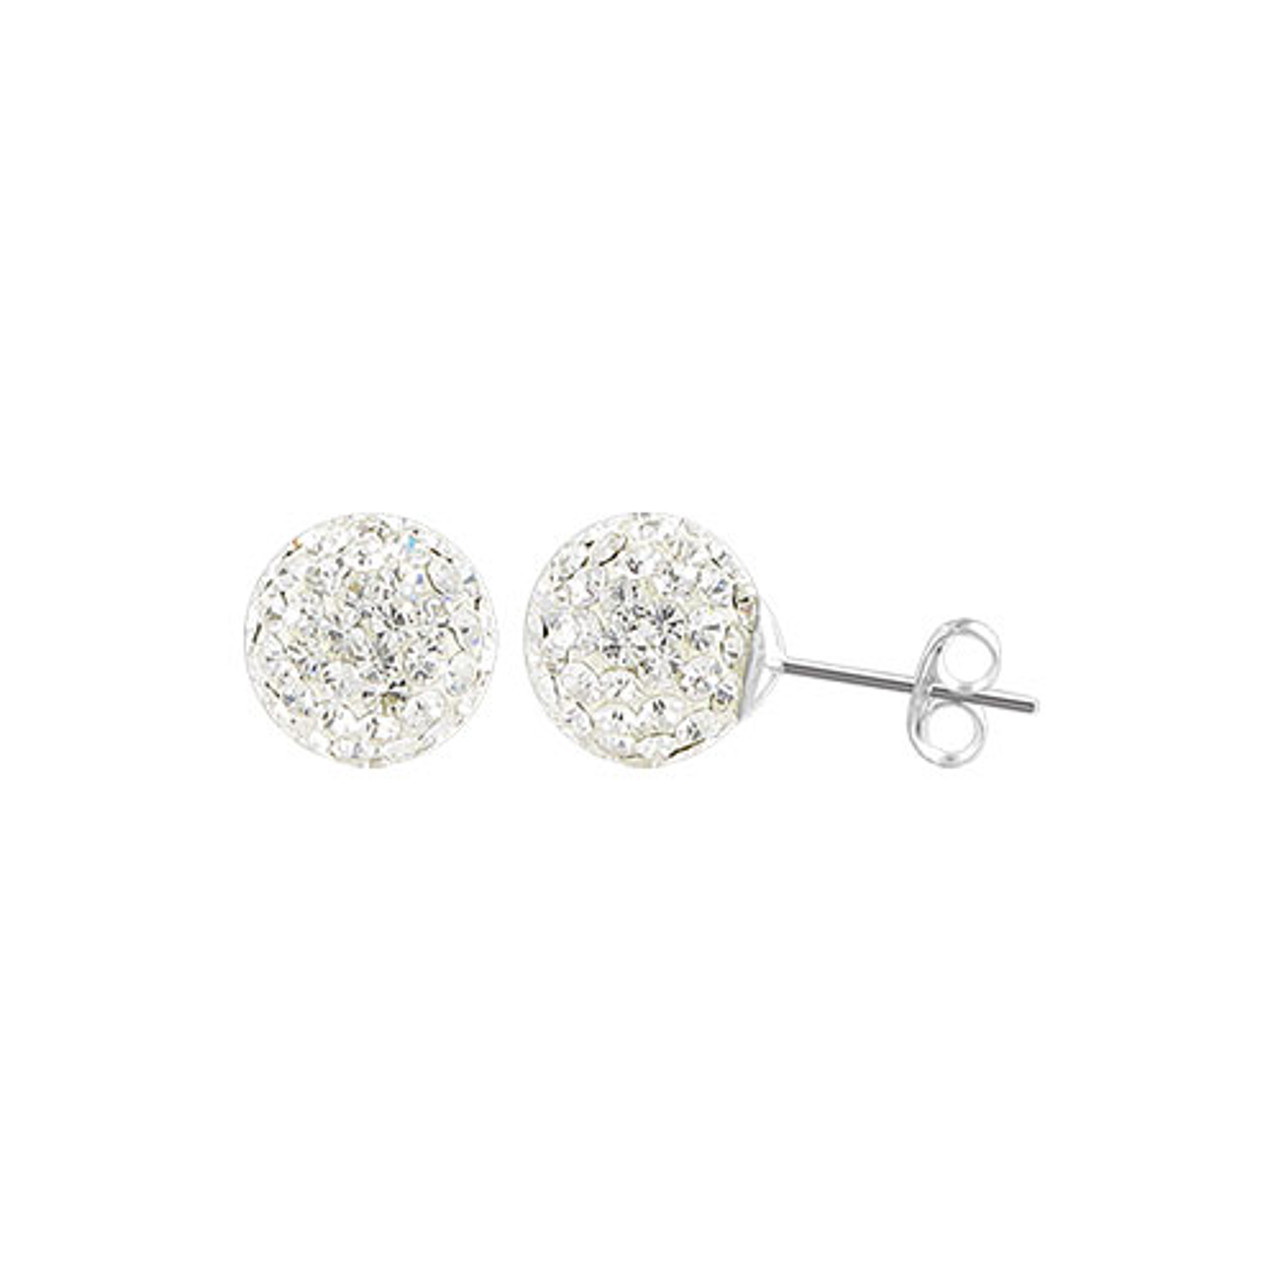 6mm Round Clear Crystal Ball Stud Earrings